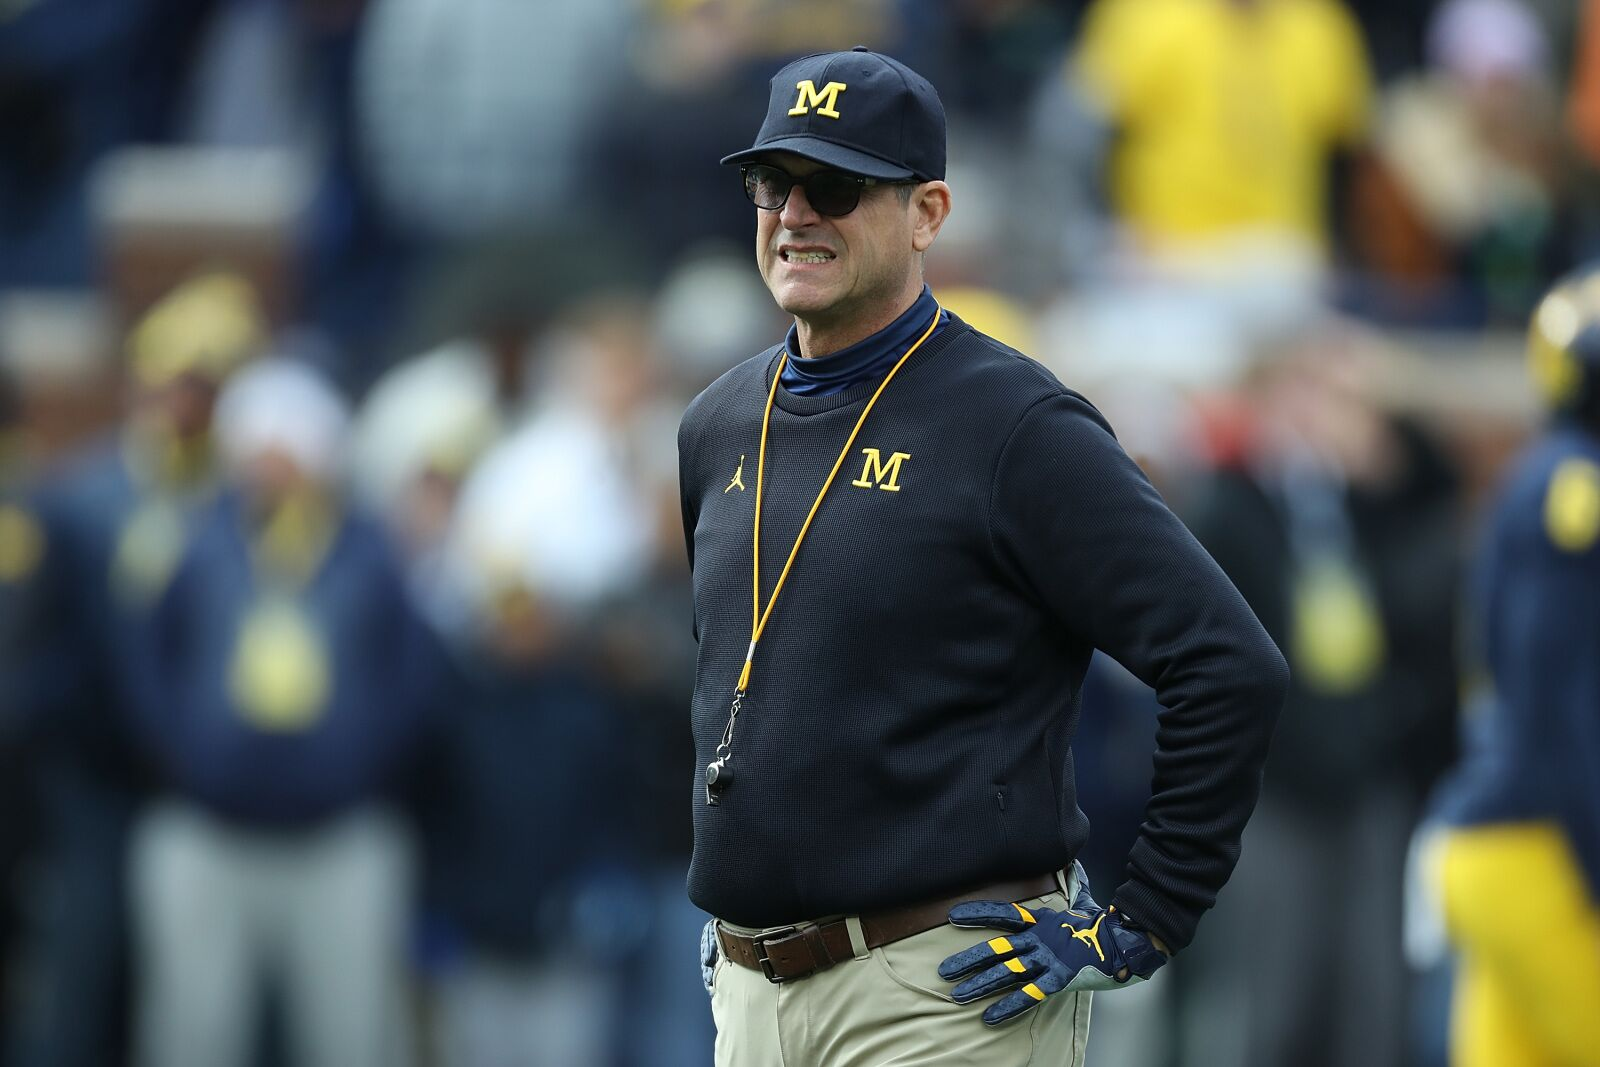 Michigan Football: It's not time to fire Jim Harbaugh just yet